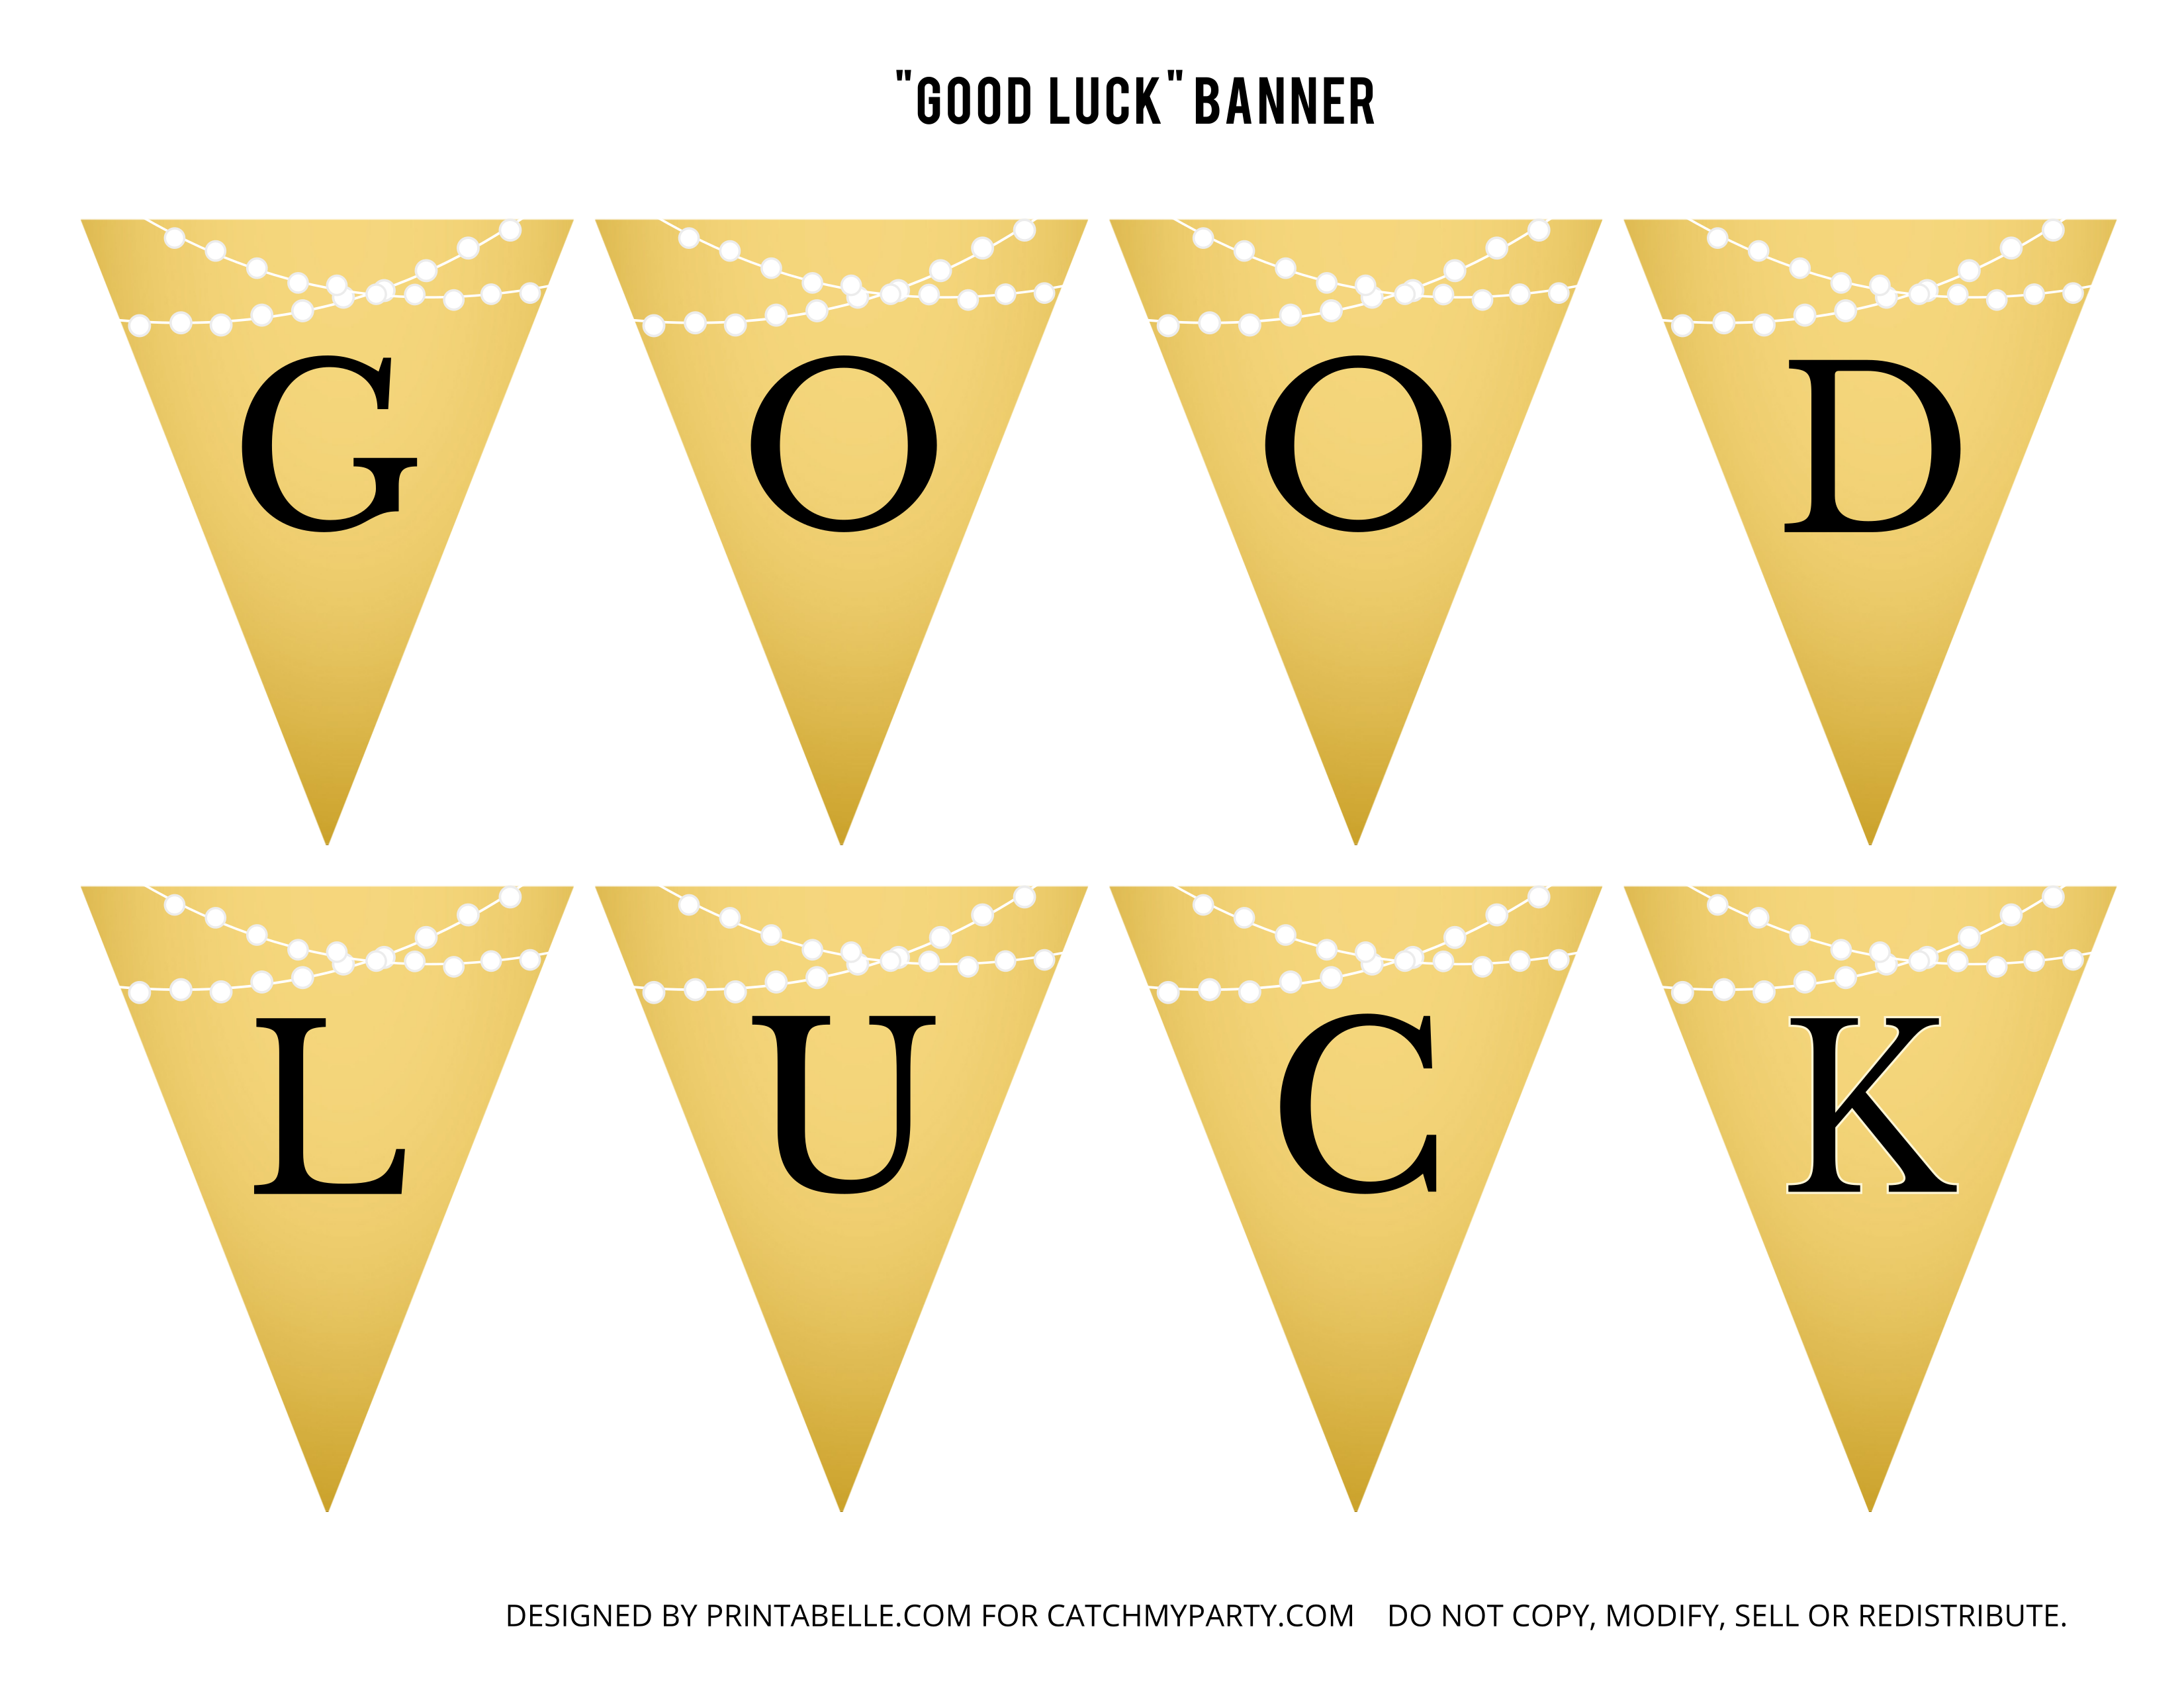 farewell banner template - the gallery for farewell and good luck banner